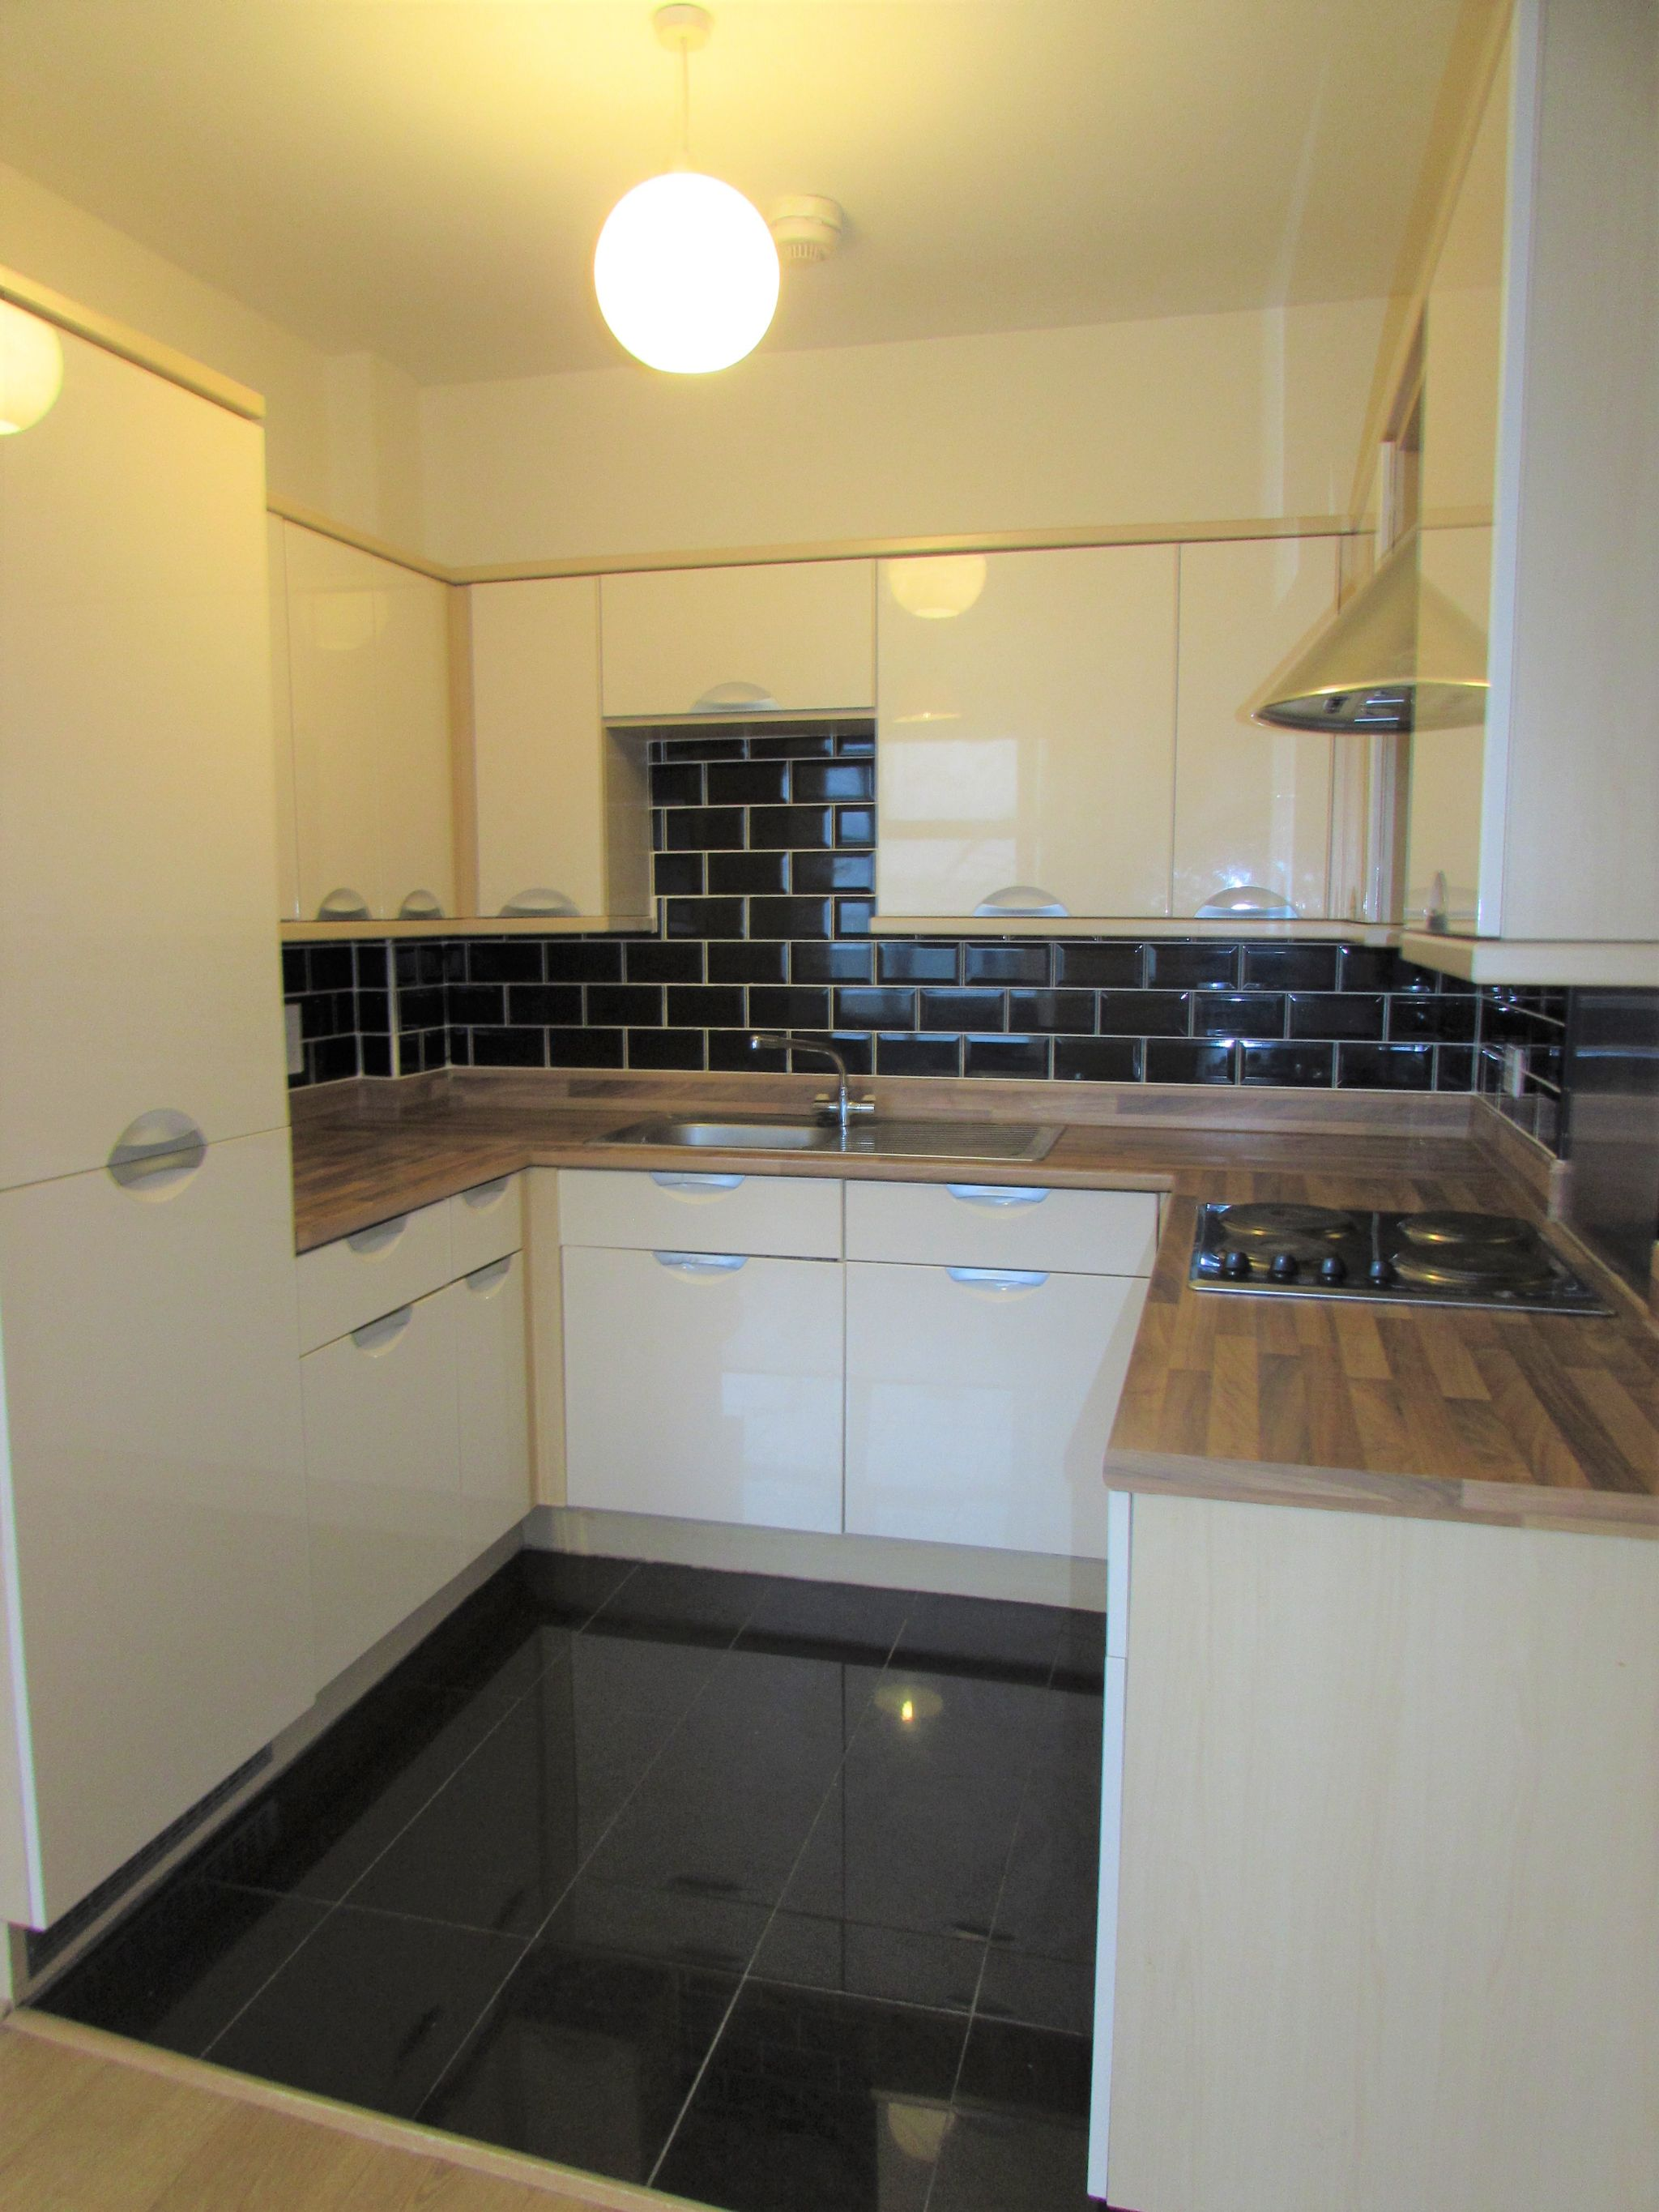 2 Bedroom Apartment Flat/apartment To Rent - Kitchen